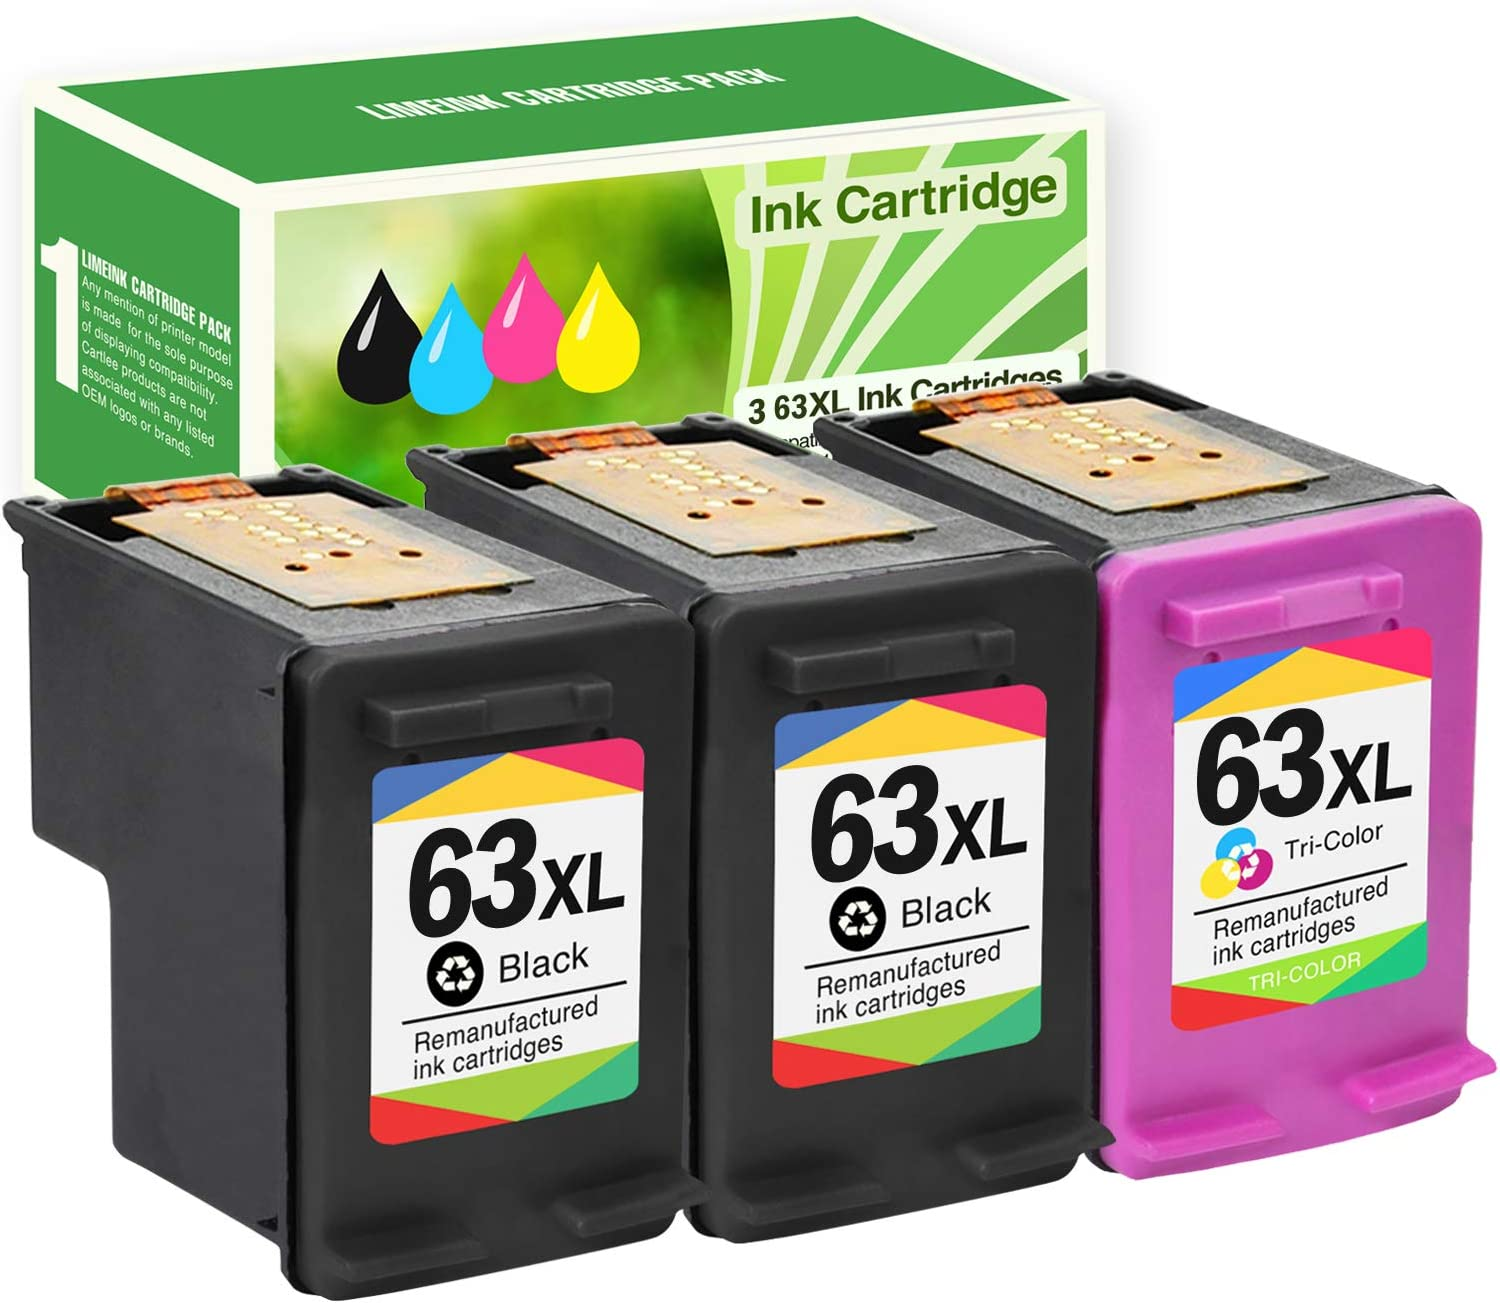 Limeink 3 Remanufactured Ink Cartridge 63XL 63 XL High Yield for HP Envy 4512 4520 Deskjet 3632 2130 2132 1110 3636 3637 1112 3630 3634 OfficeJet 3830 3833 4650 4652 4655 5255 5258 Printer Black Color